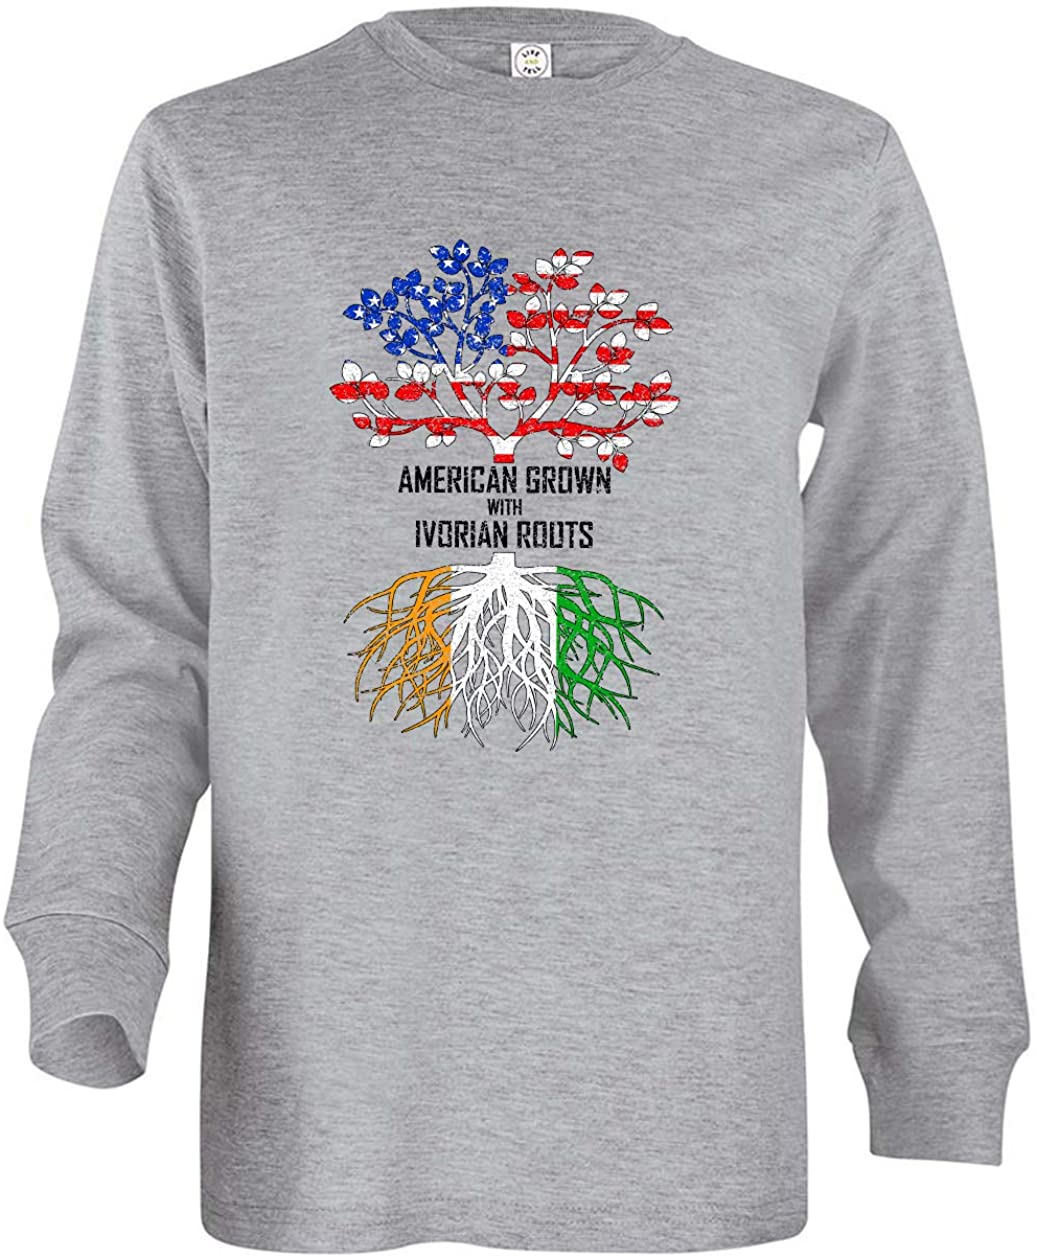 Tenacitee Girl's Youth American Grown with Ivorian Roots Long Sleeve T-Shirt